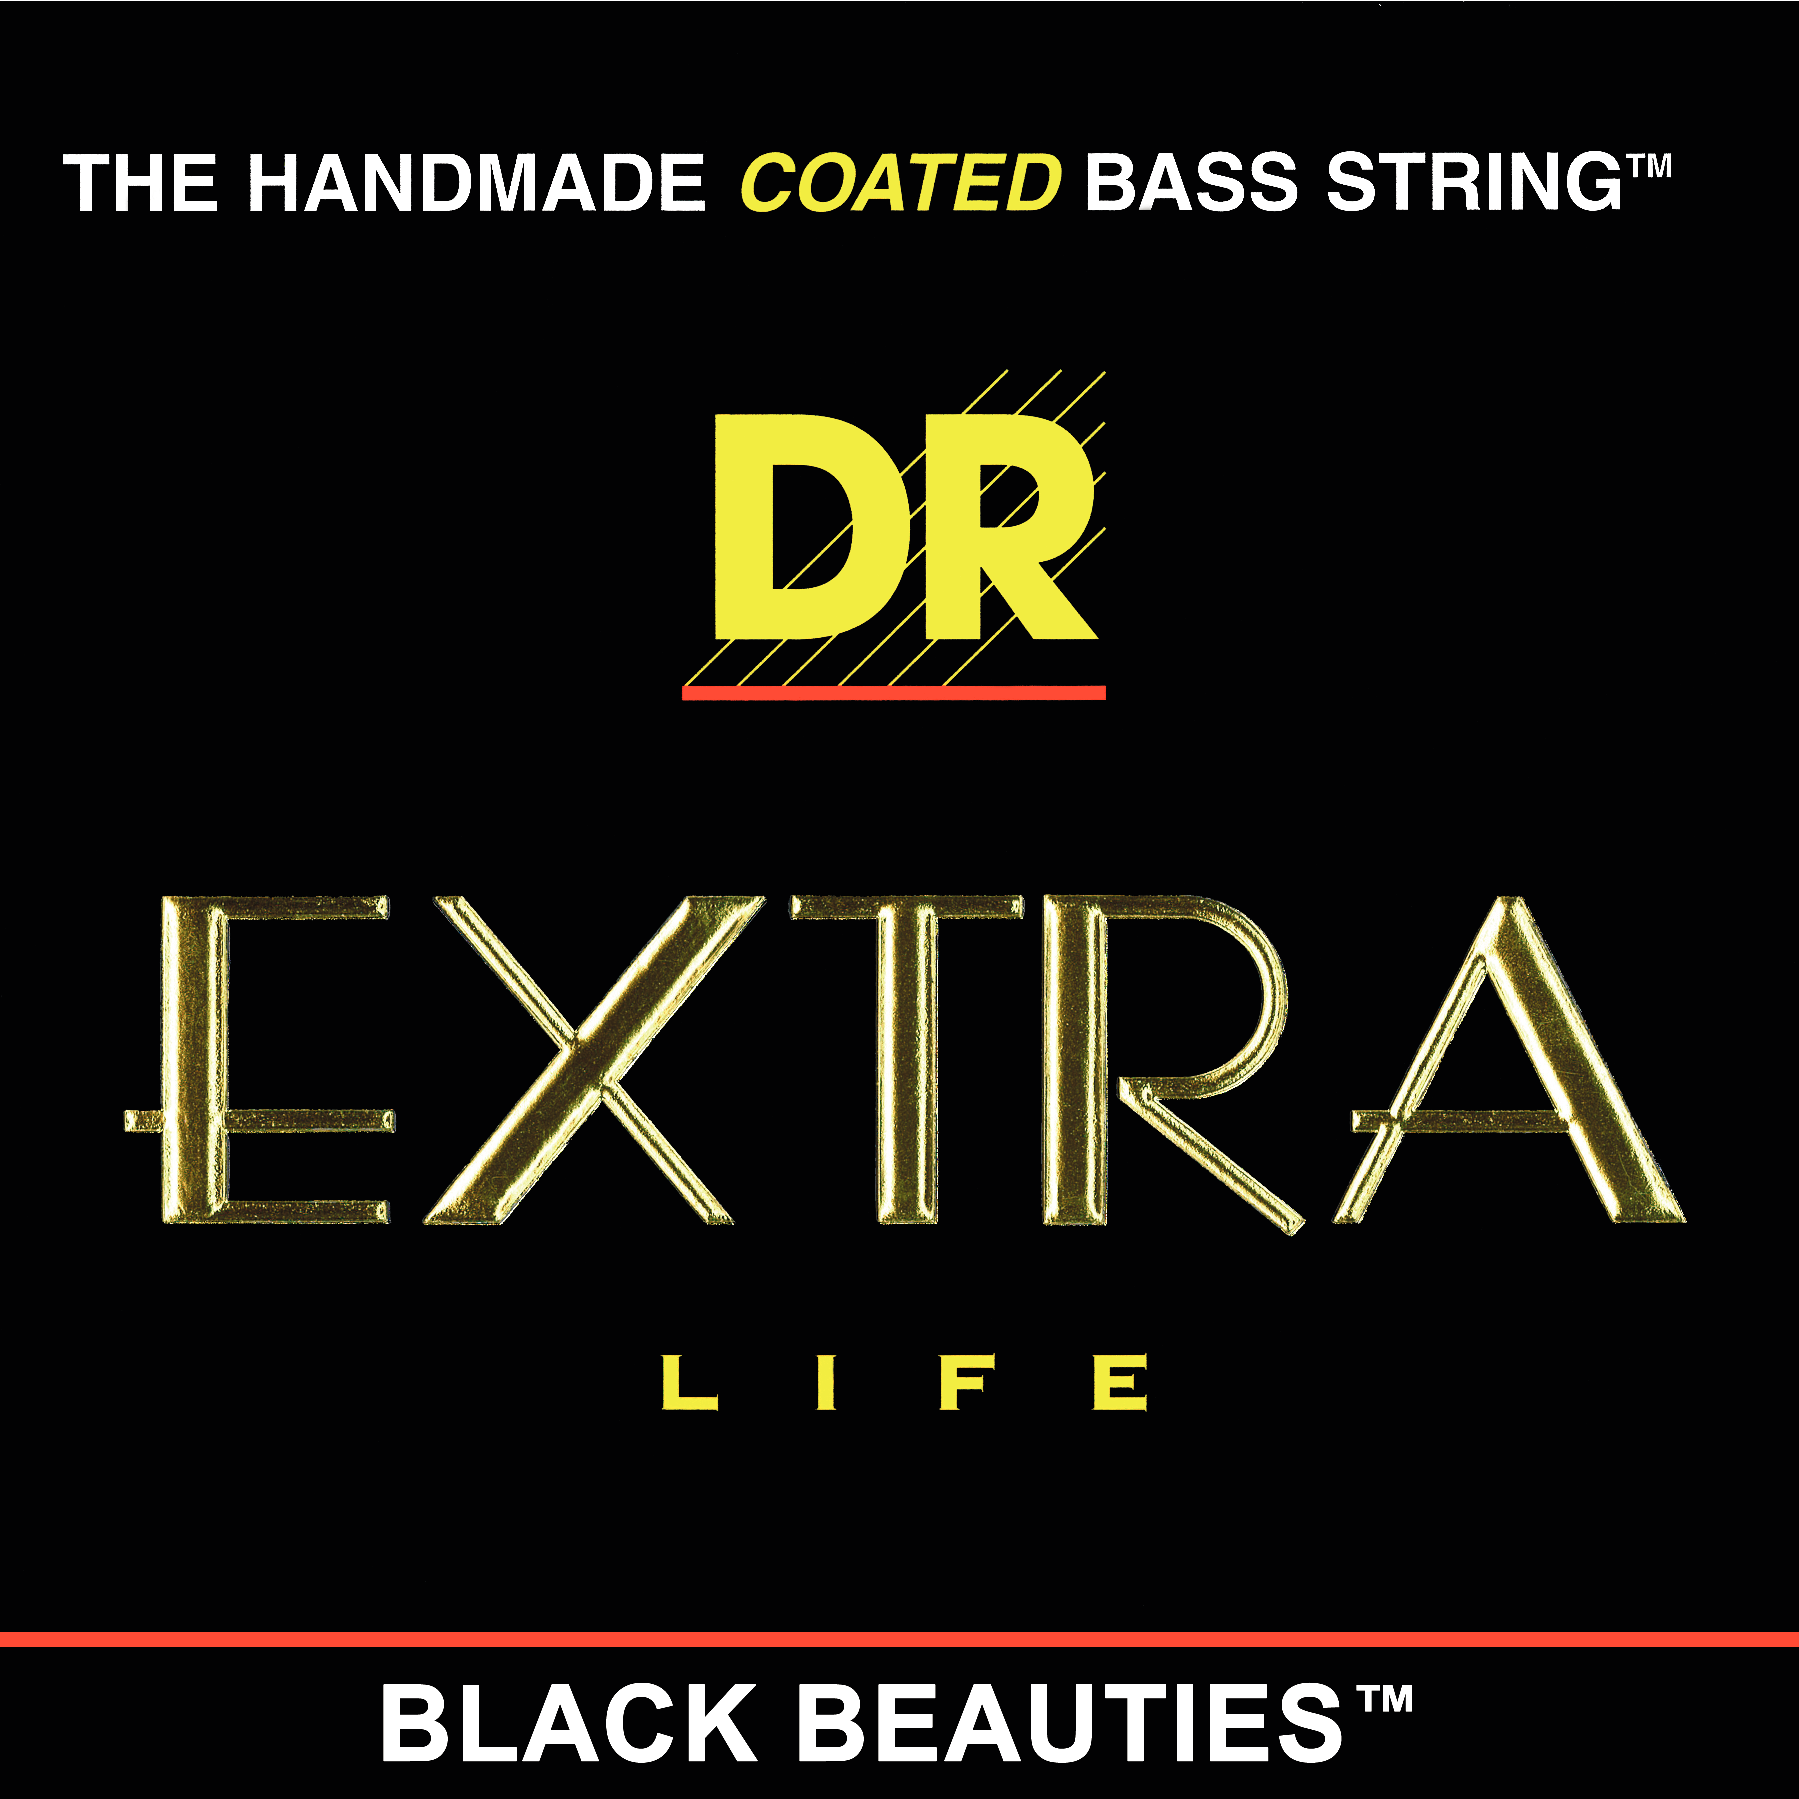 Extra Black Beauties Lite (.040 - .100), DR B EXBK BKB-40